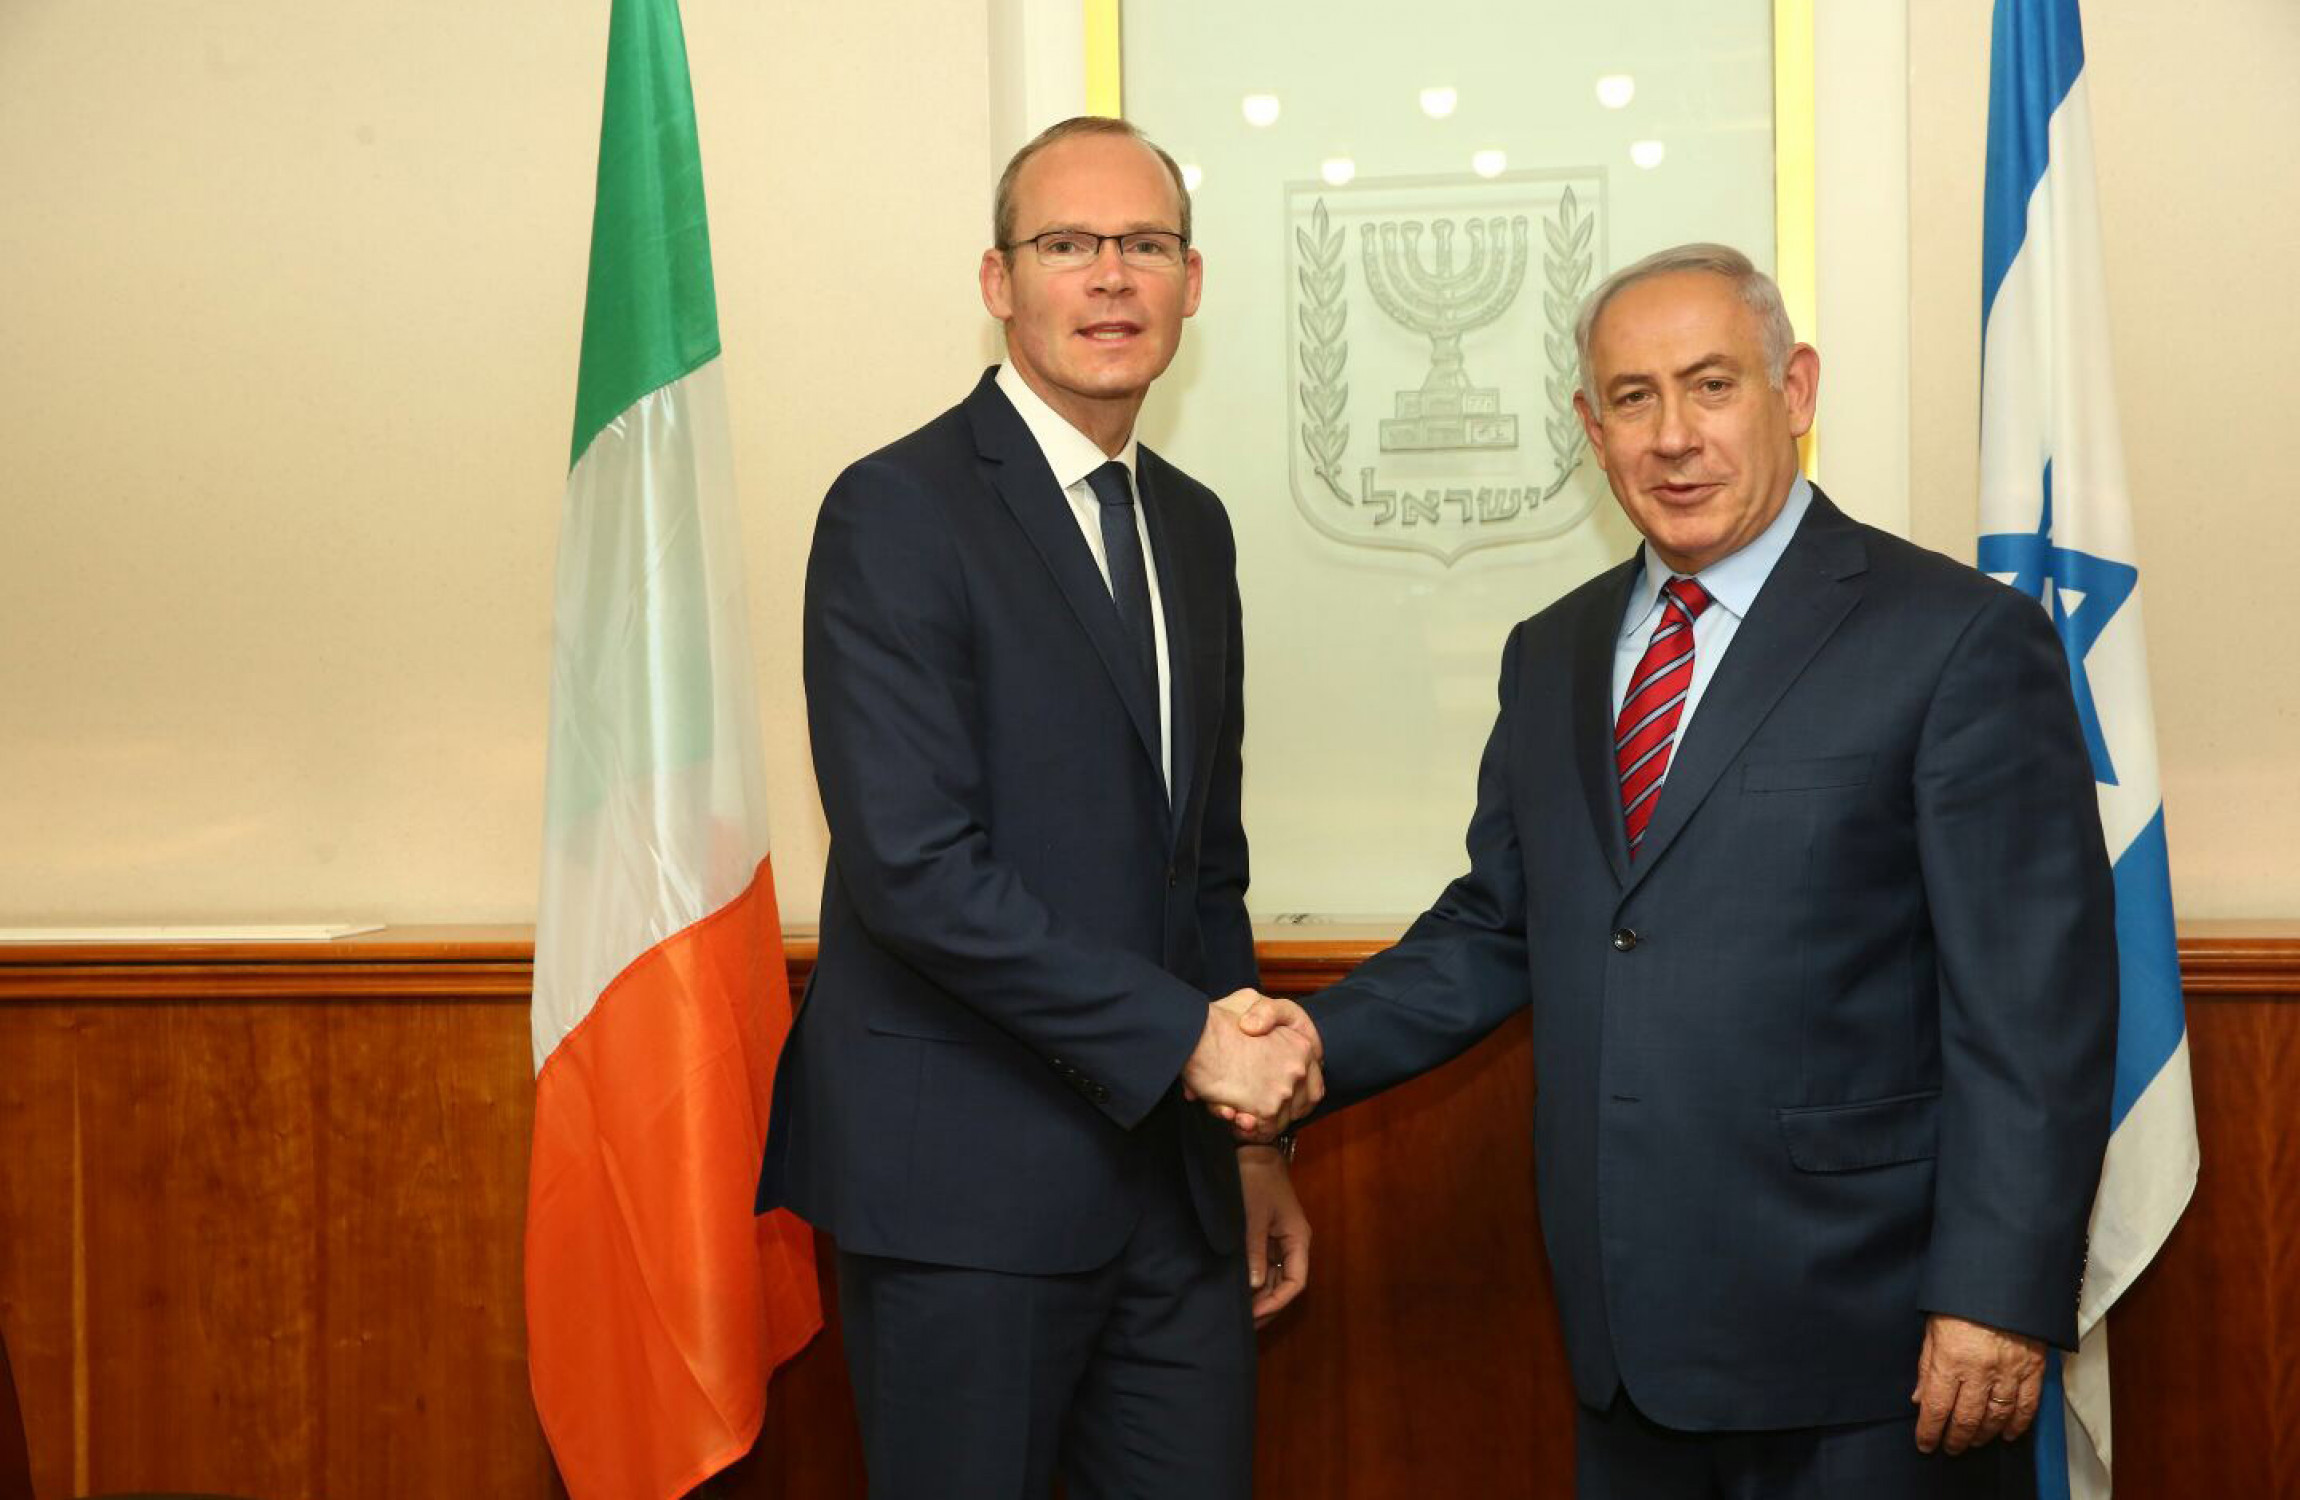 Israel condemns Irish bill banning goods from occupied lands